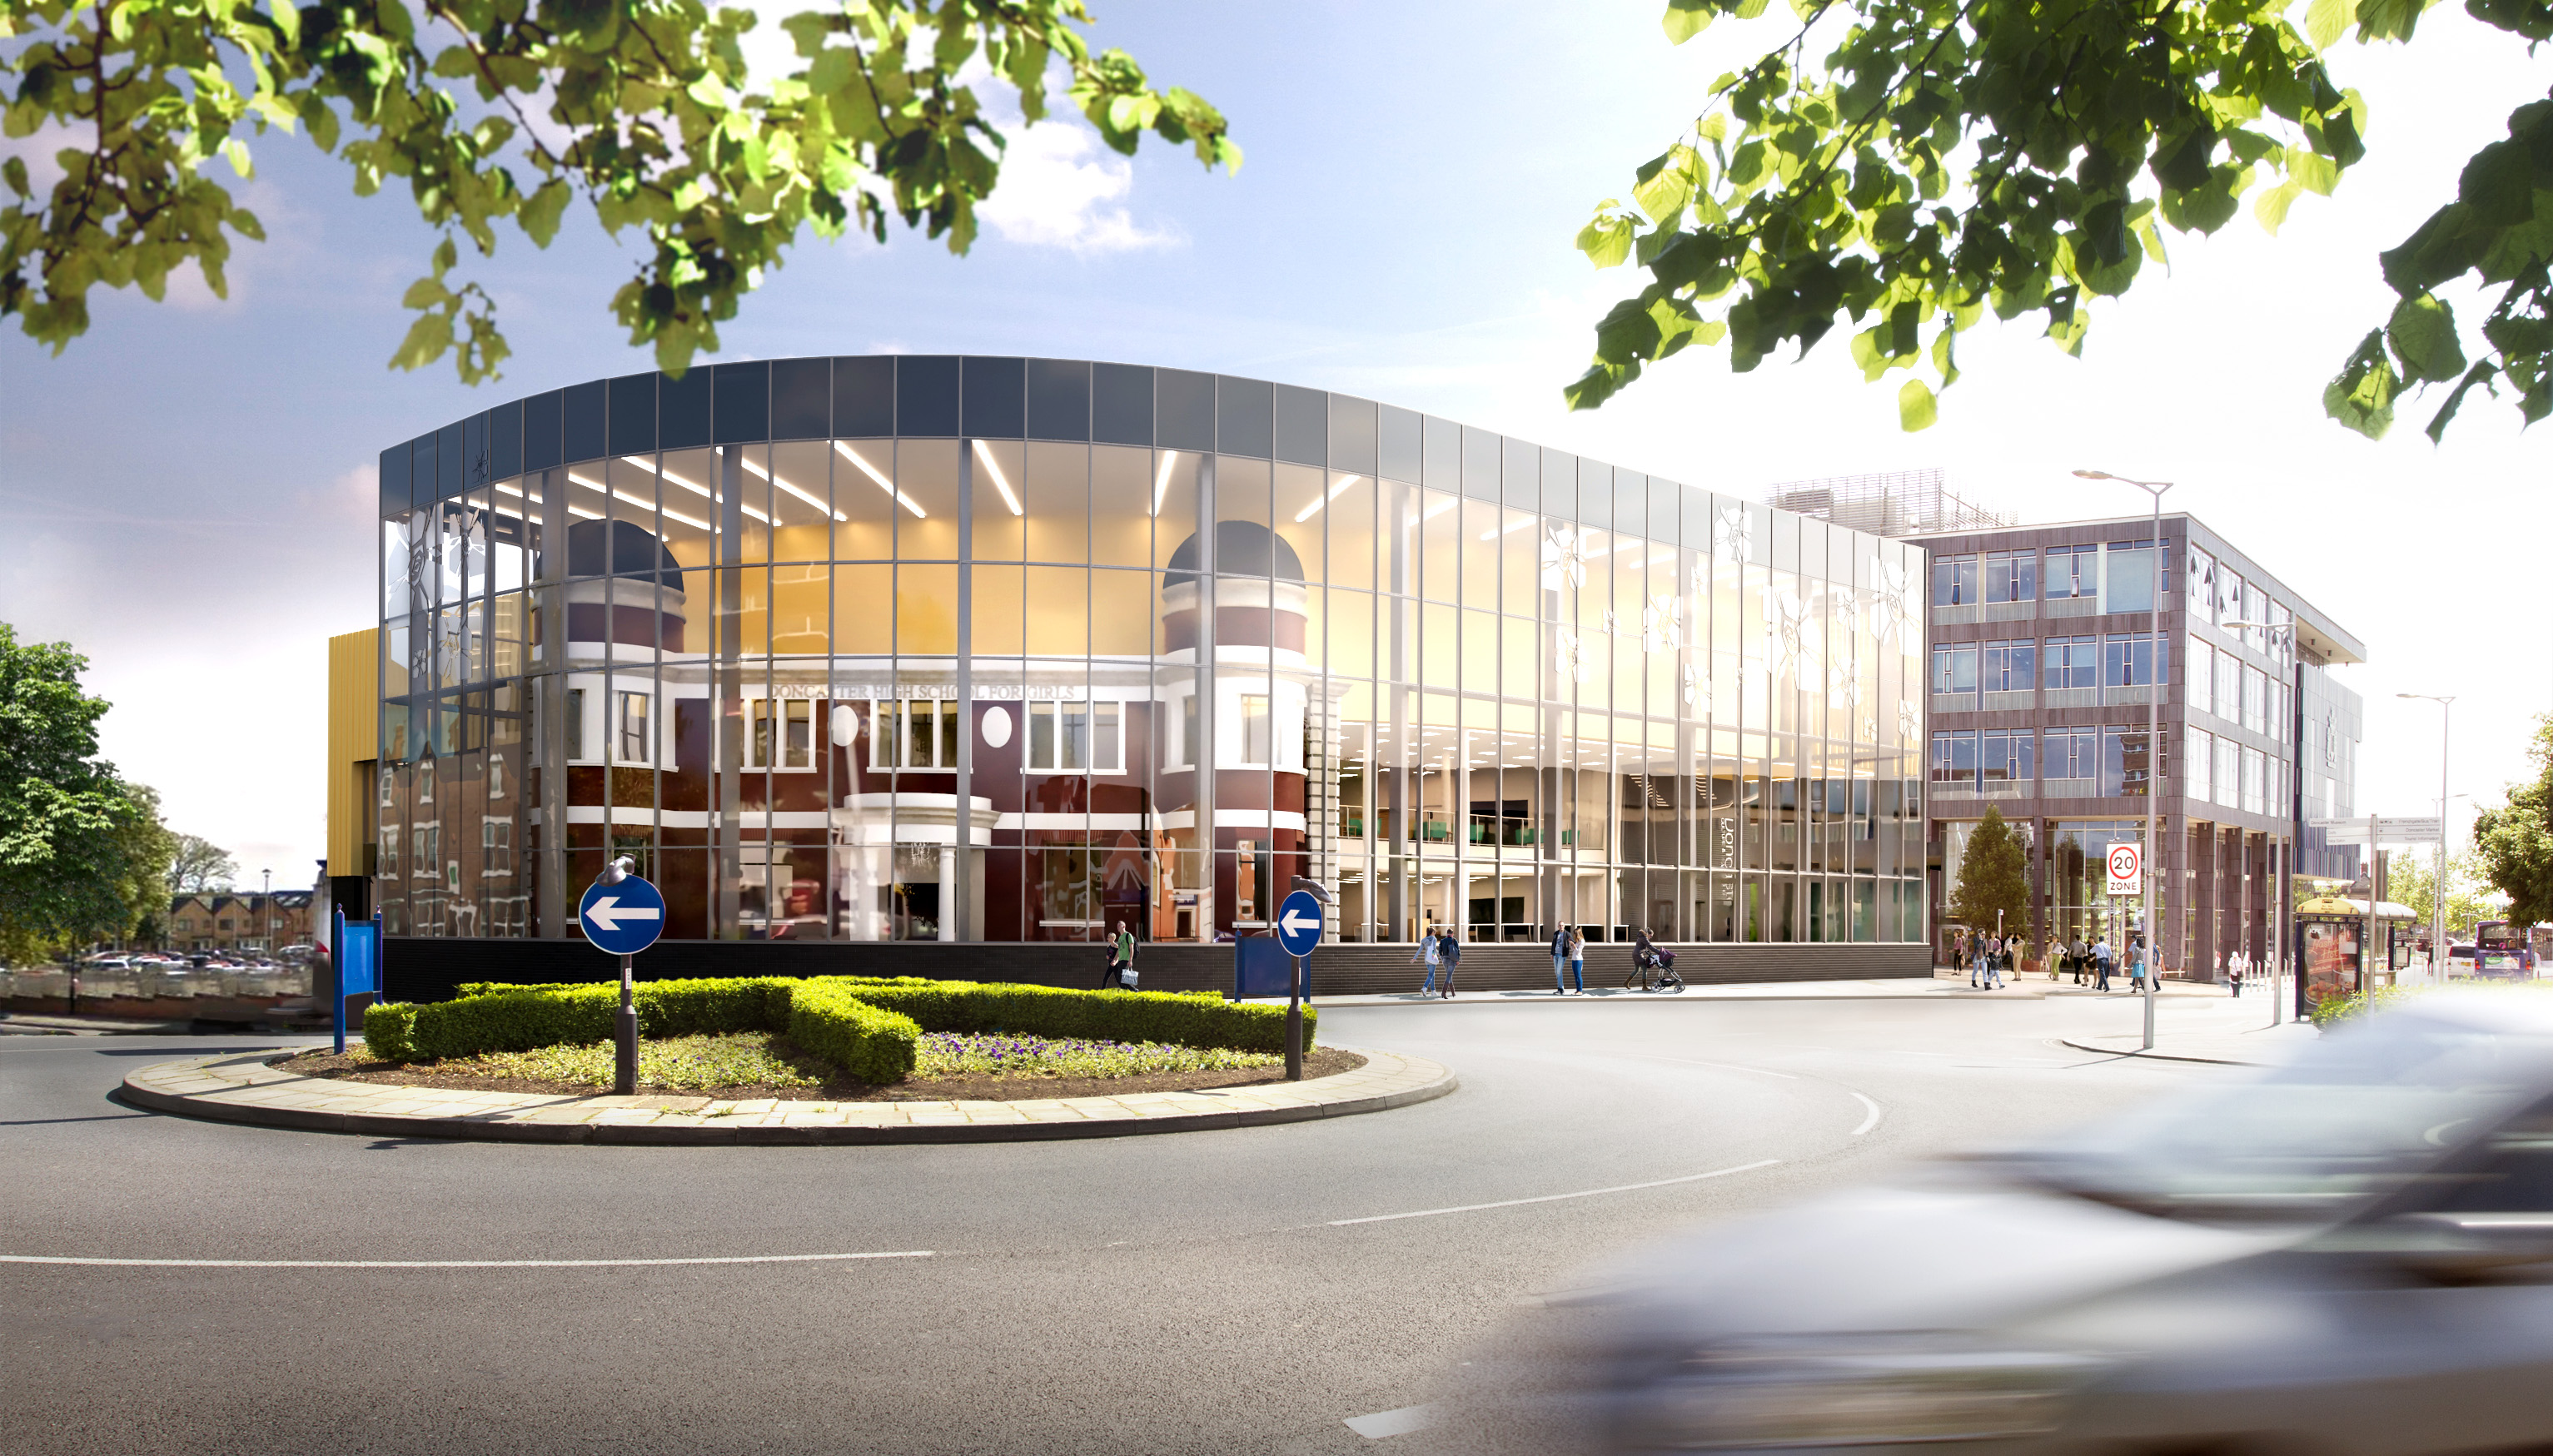 New Central Library and Museum artist impression